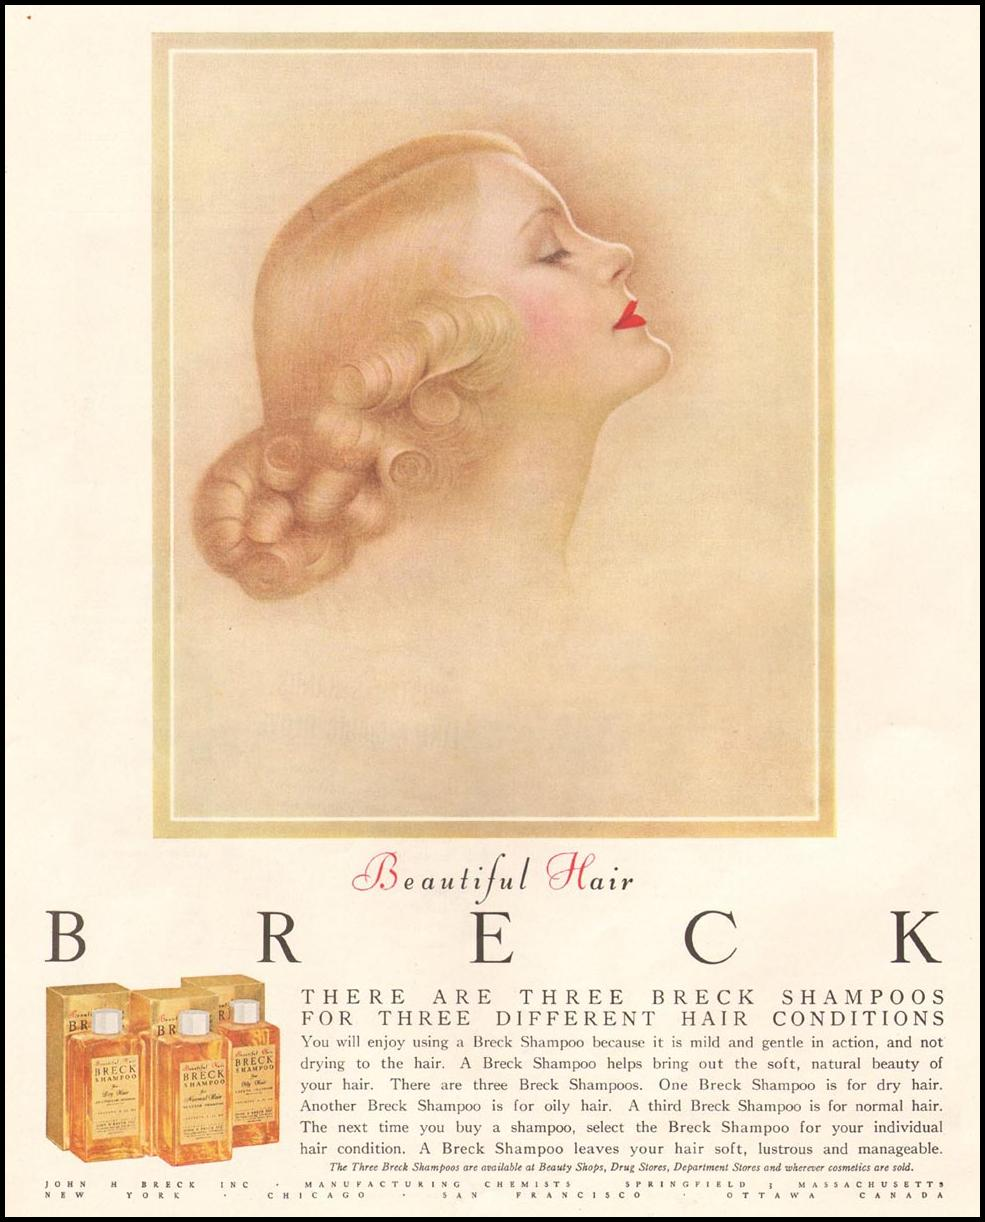 BRECK SHAMPOO LADIES' HOME JOURNAL 03/01/1954 p. 132